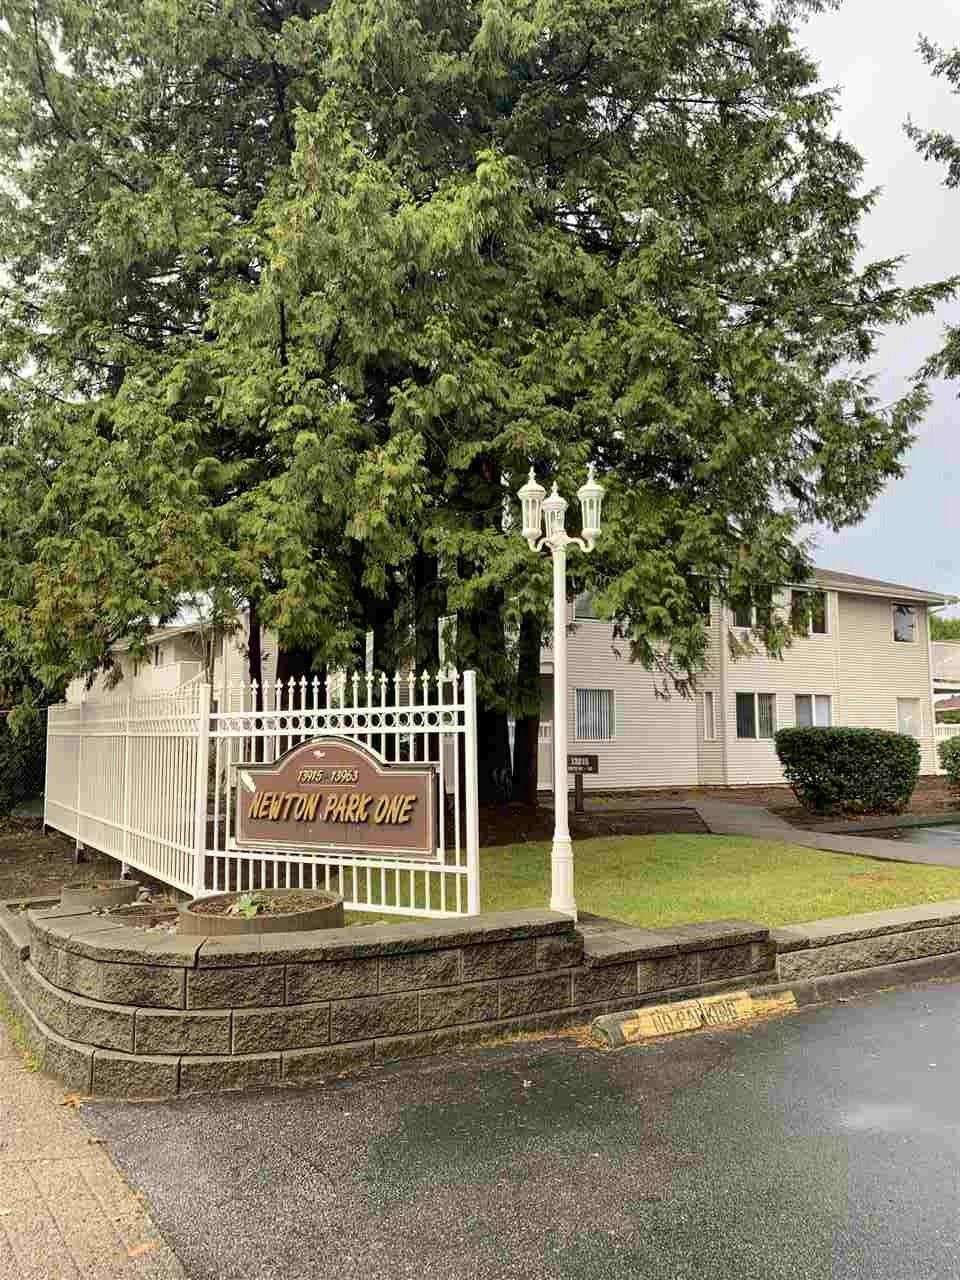 """Main Photo: 104 13915 72 Avenue in Surrey: West Newton Townhouse for sale in """"NEWTON PARK 1"""" : MLS®# R2522956"""